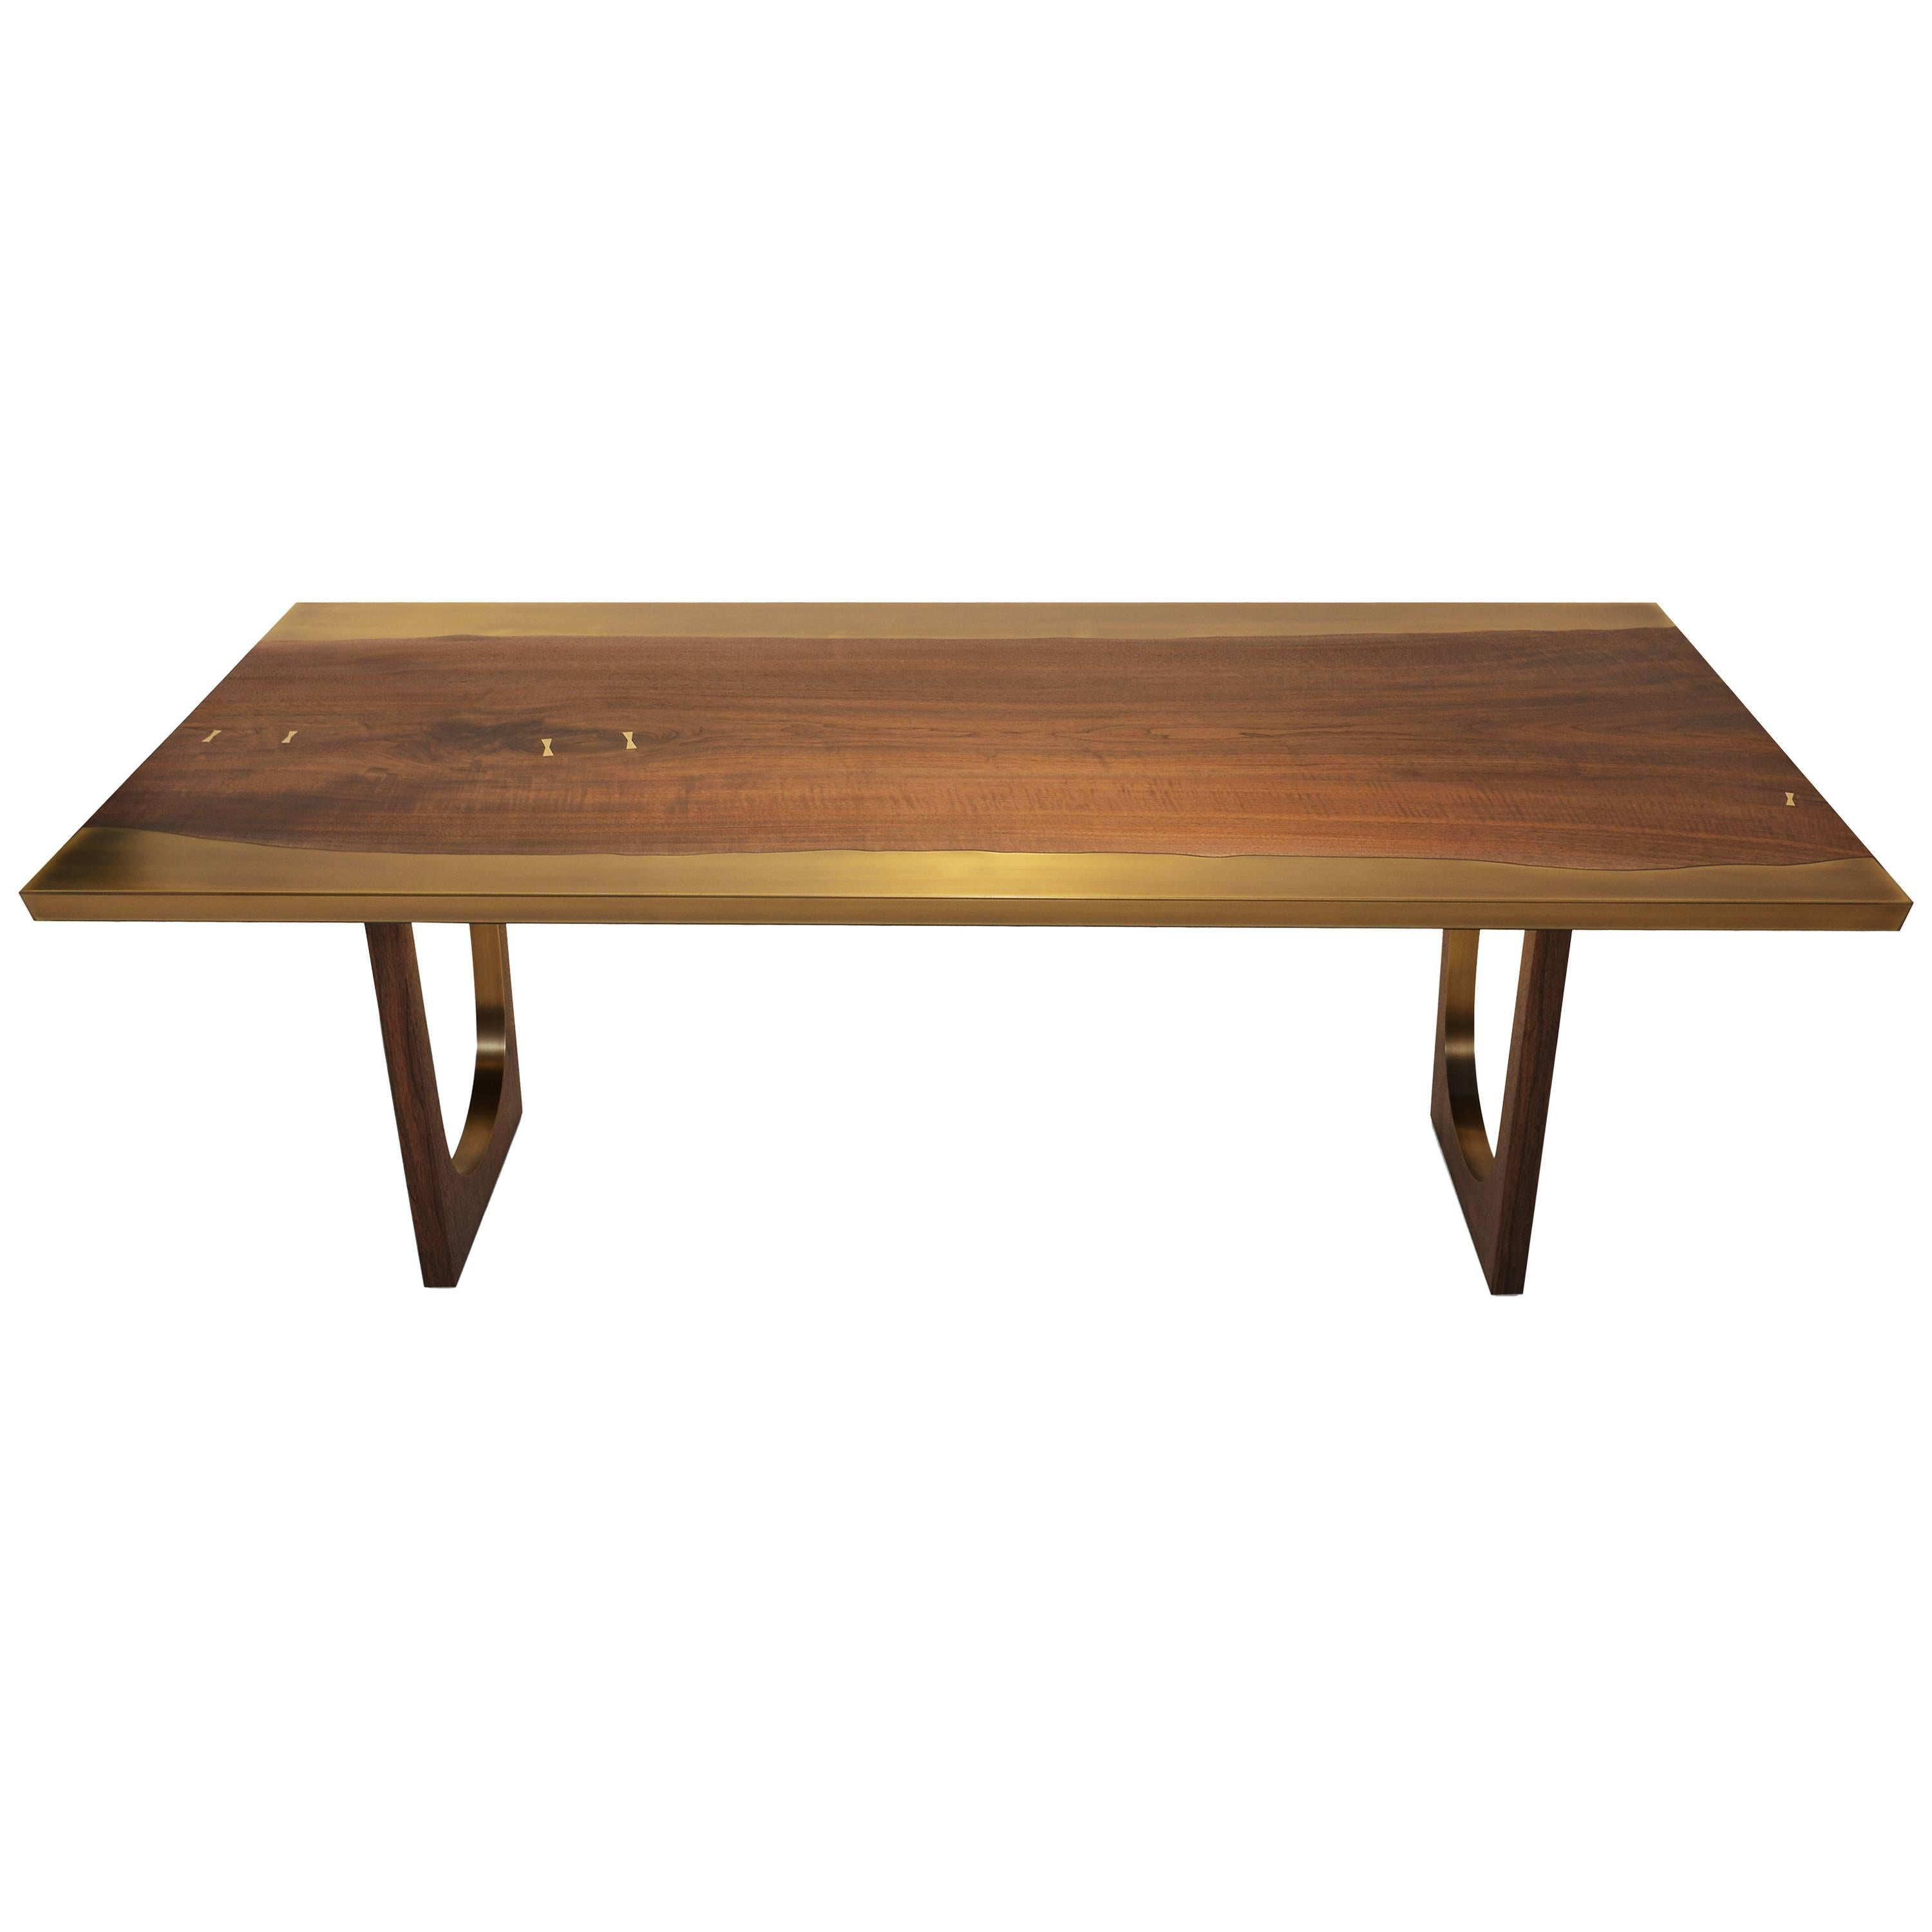 Nola Dining Table with Walnut and Bronze - Customizable Wood, Metal and Resin